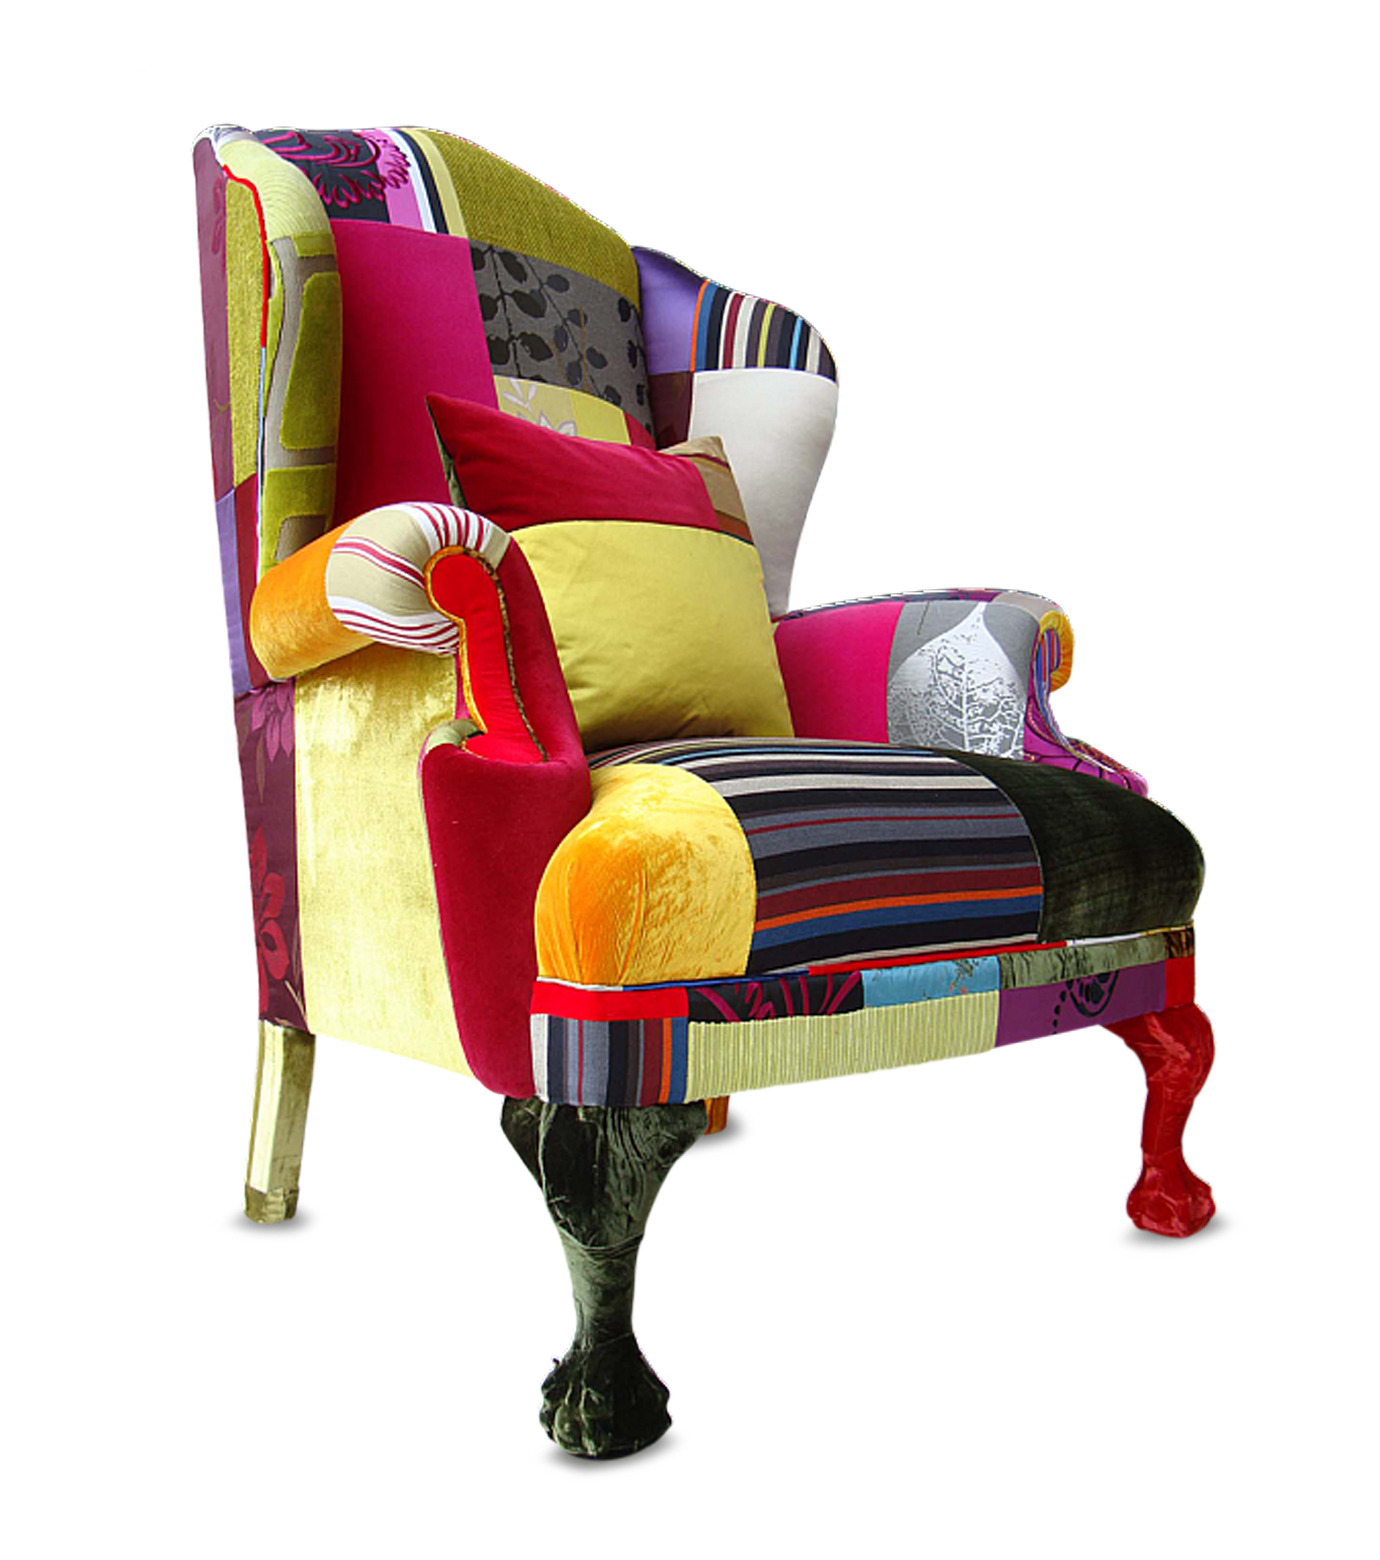 Squintlimited(スクイントリミテッド)のSelkirk wing chair-NONE-10-0 拡大詳細画像4